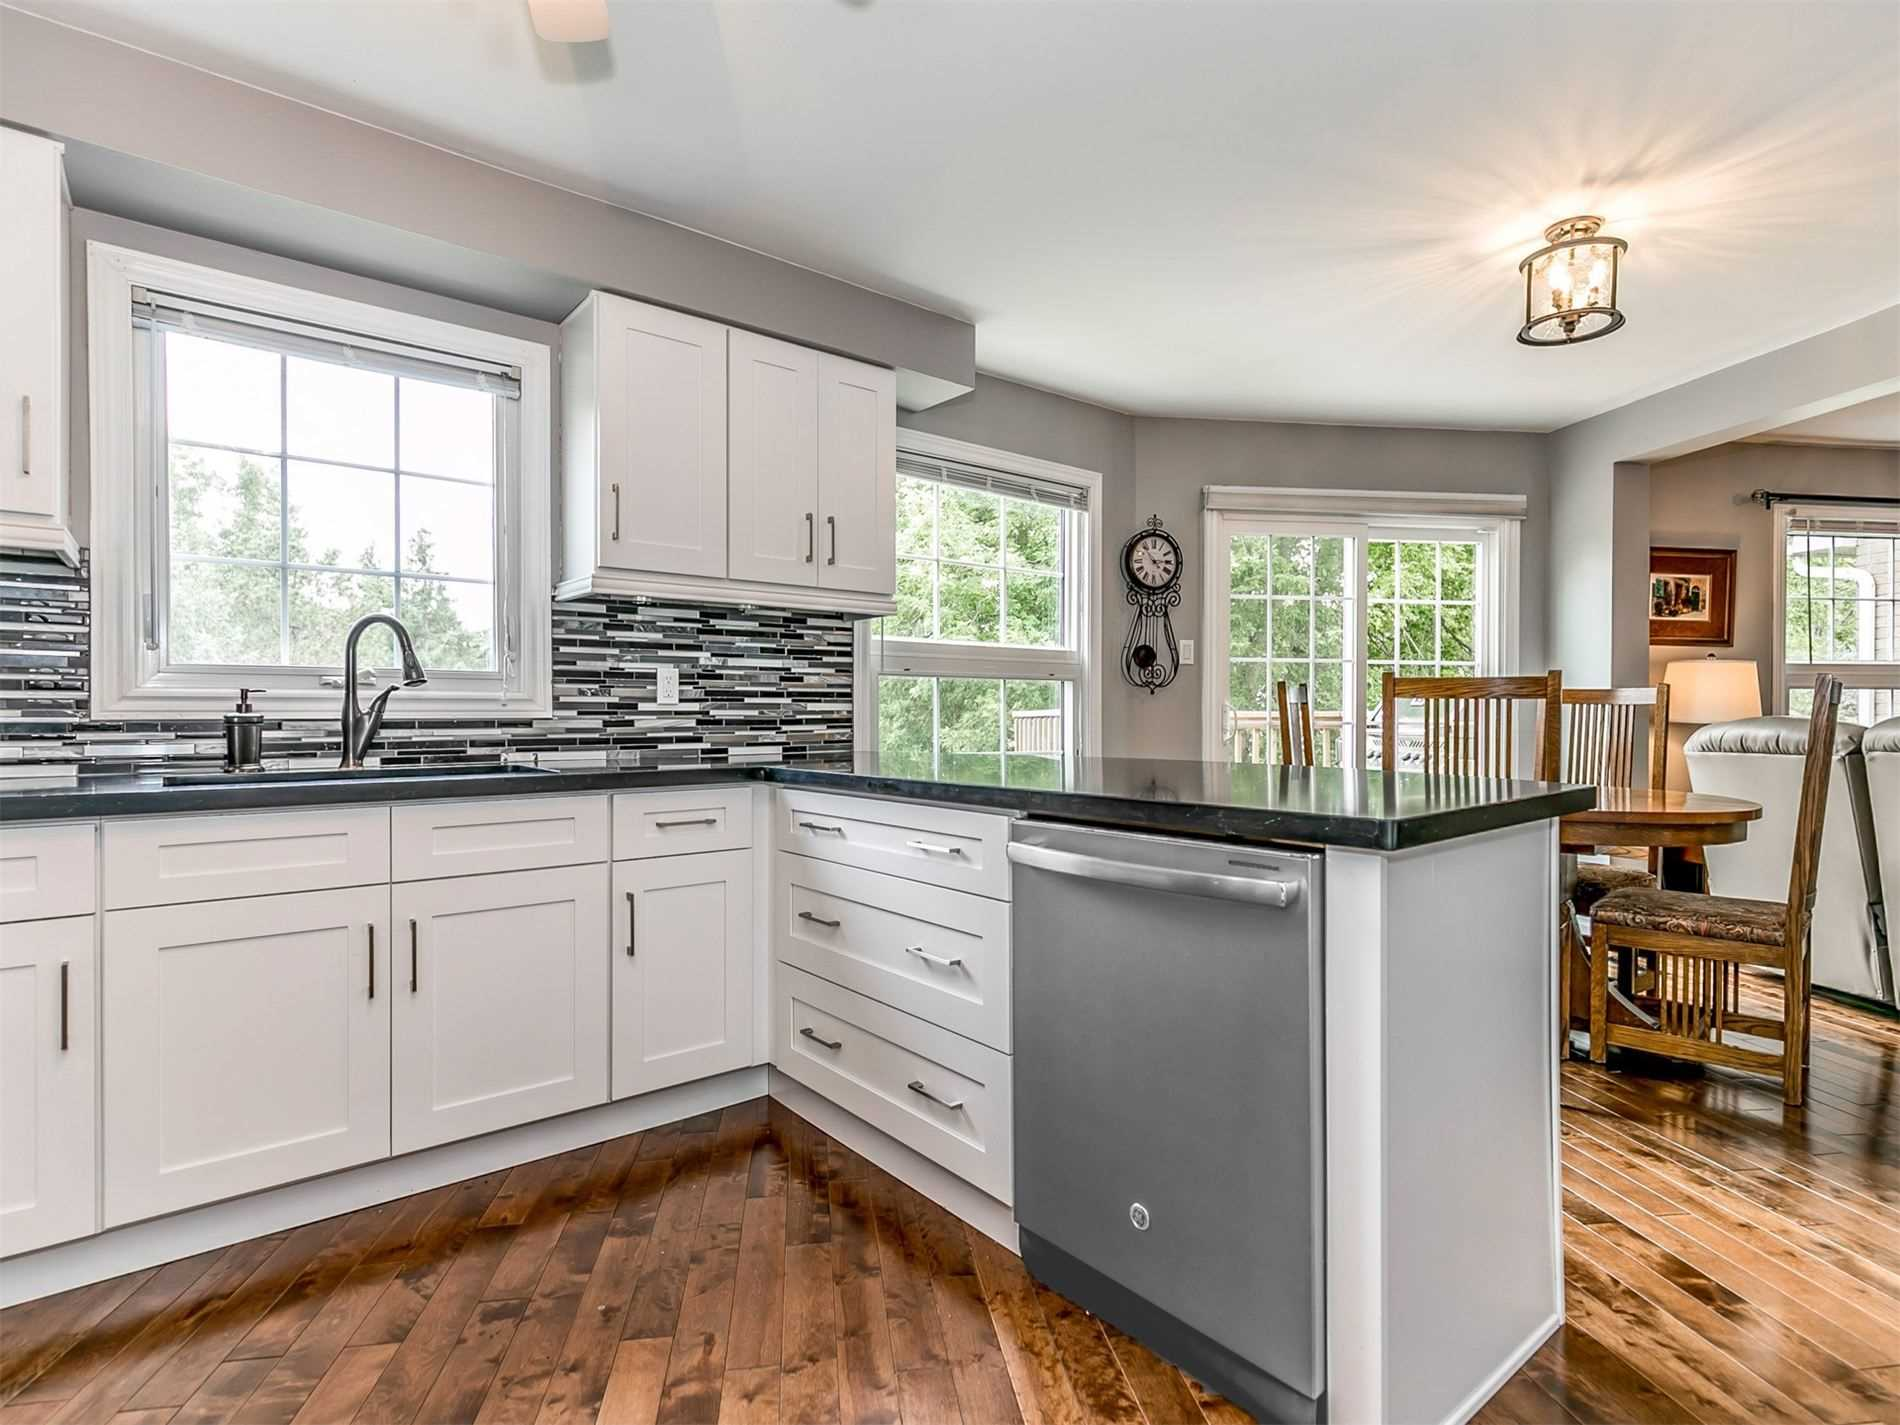 For Sale: 6 Adams Court, Uxbridge, ON | 2 Bed, 3 Bath Townhouse for $579900.00. See 40 photos!